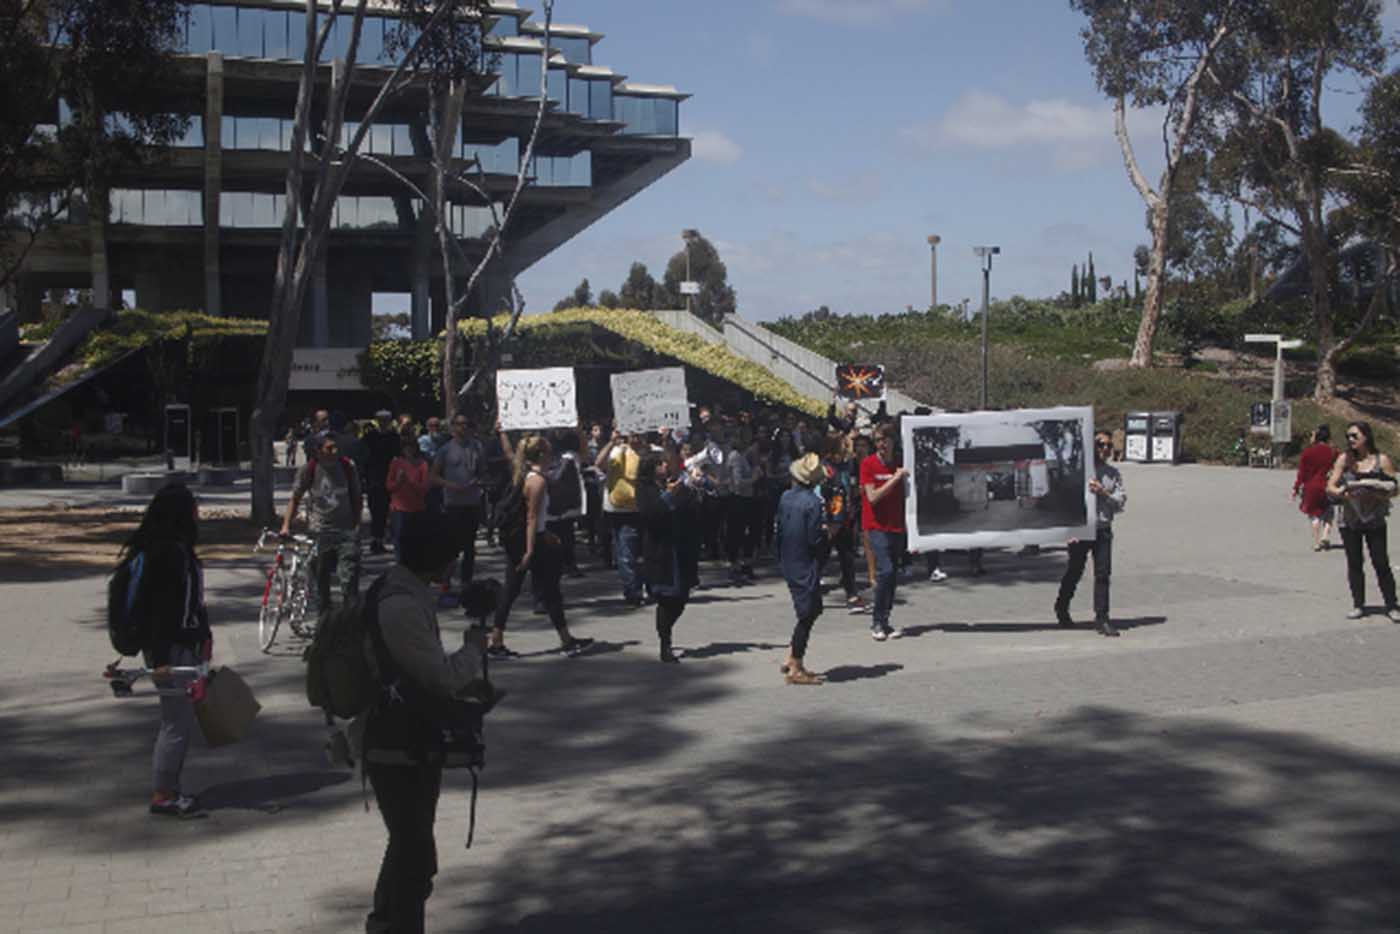 UAG protest on library walk, UCSD (photo by Fred Lonidier)